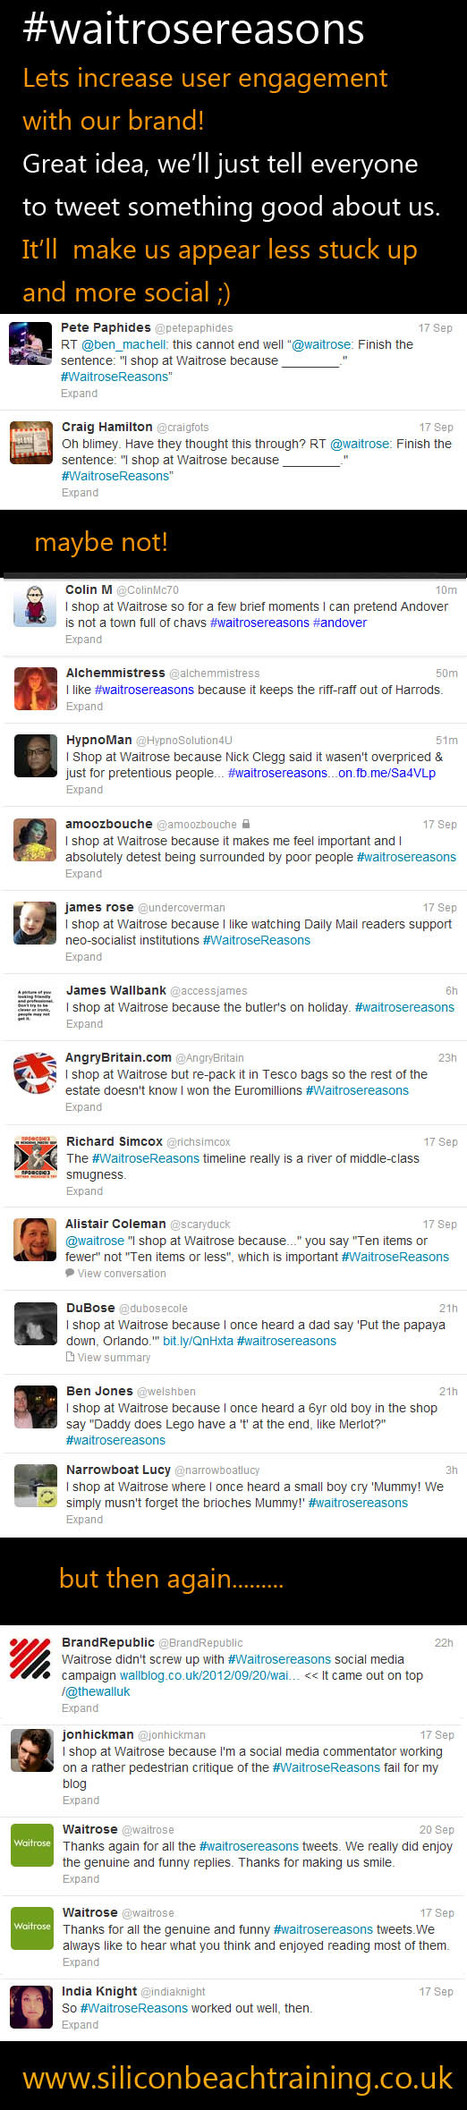 #waitrosereasons - Social media success or #epicfail | The Best in Business | Scoop.it